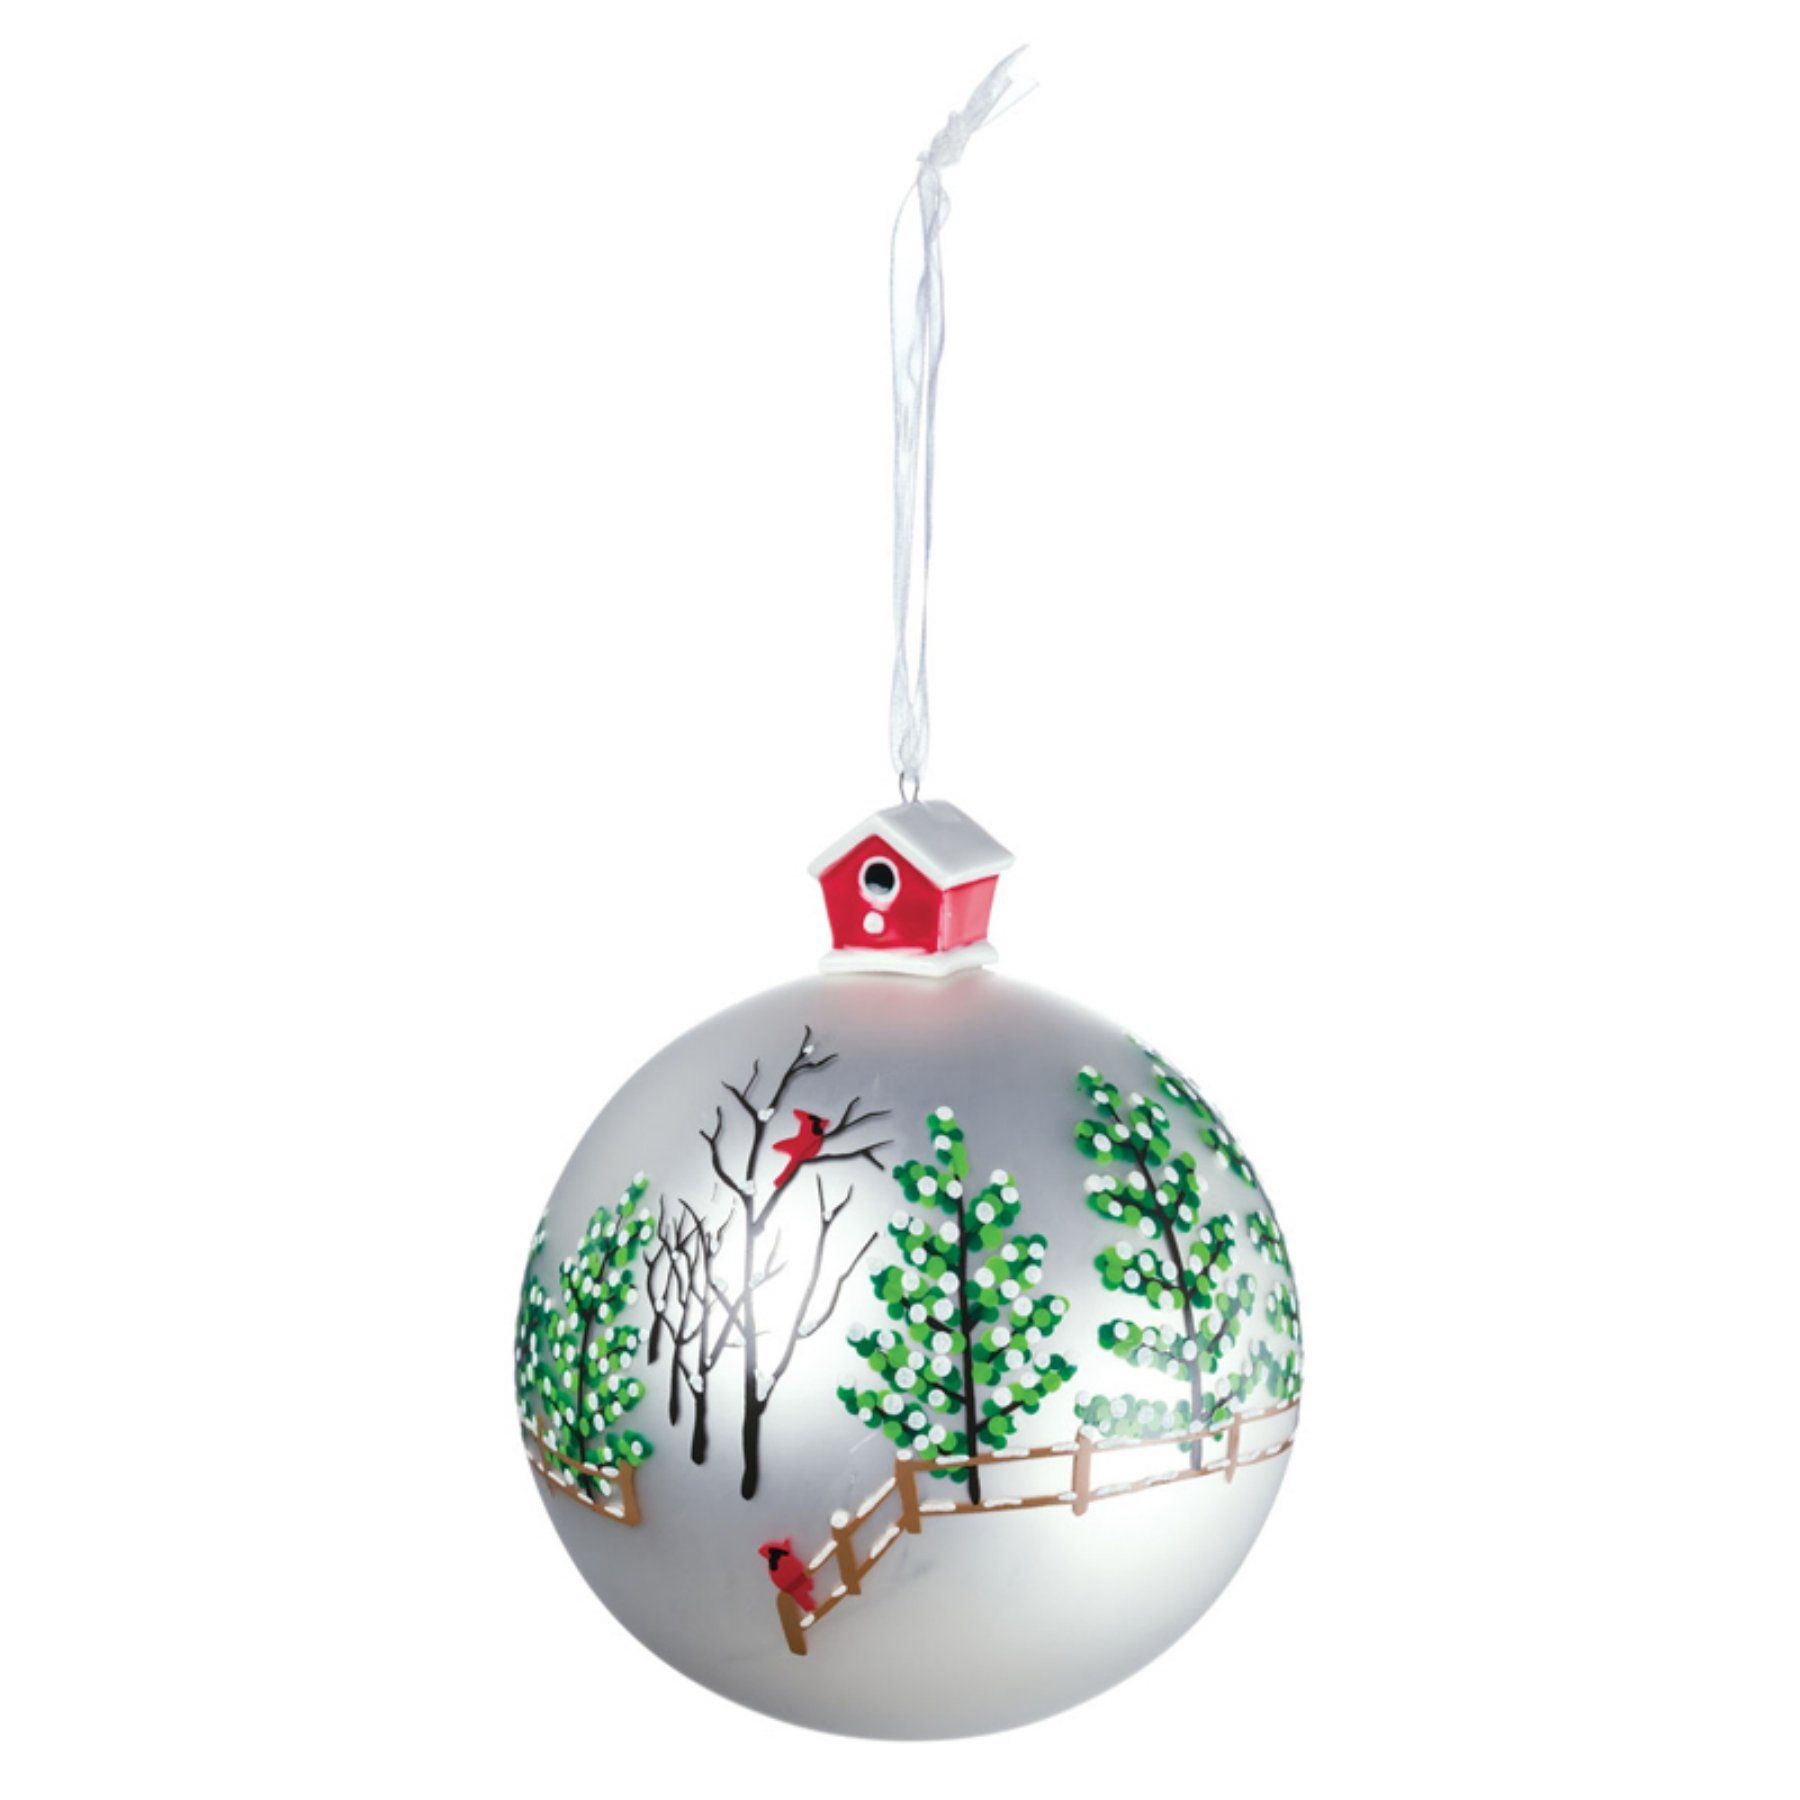 Hanukkah Christmas Ornaments.Sullivans Forest Scene Ball Ornament Products In 2019